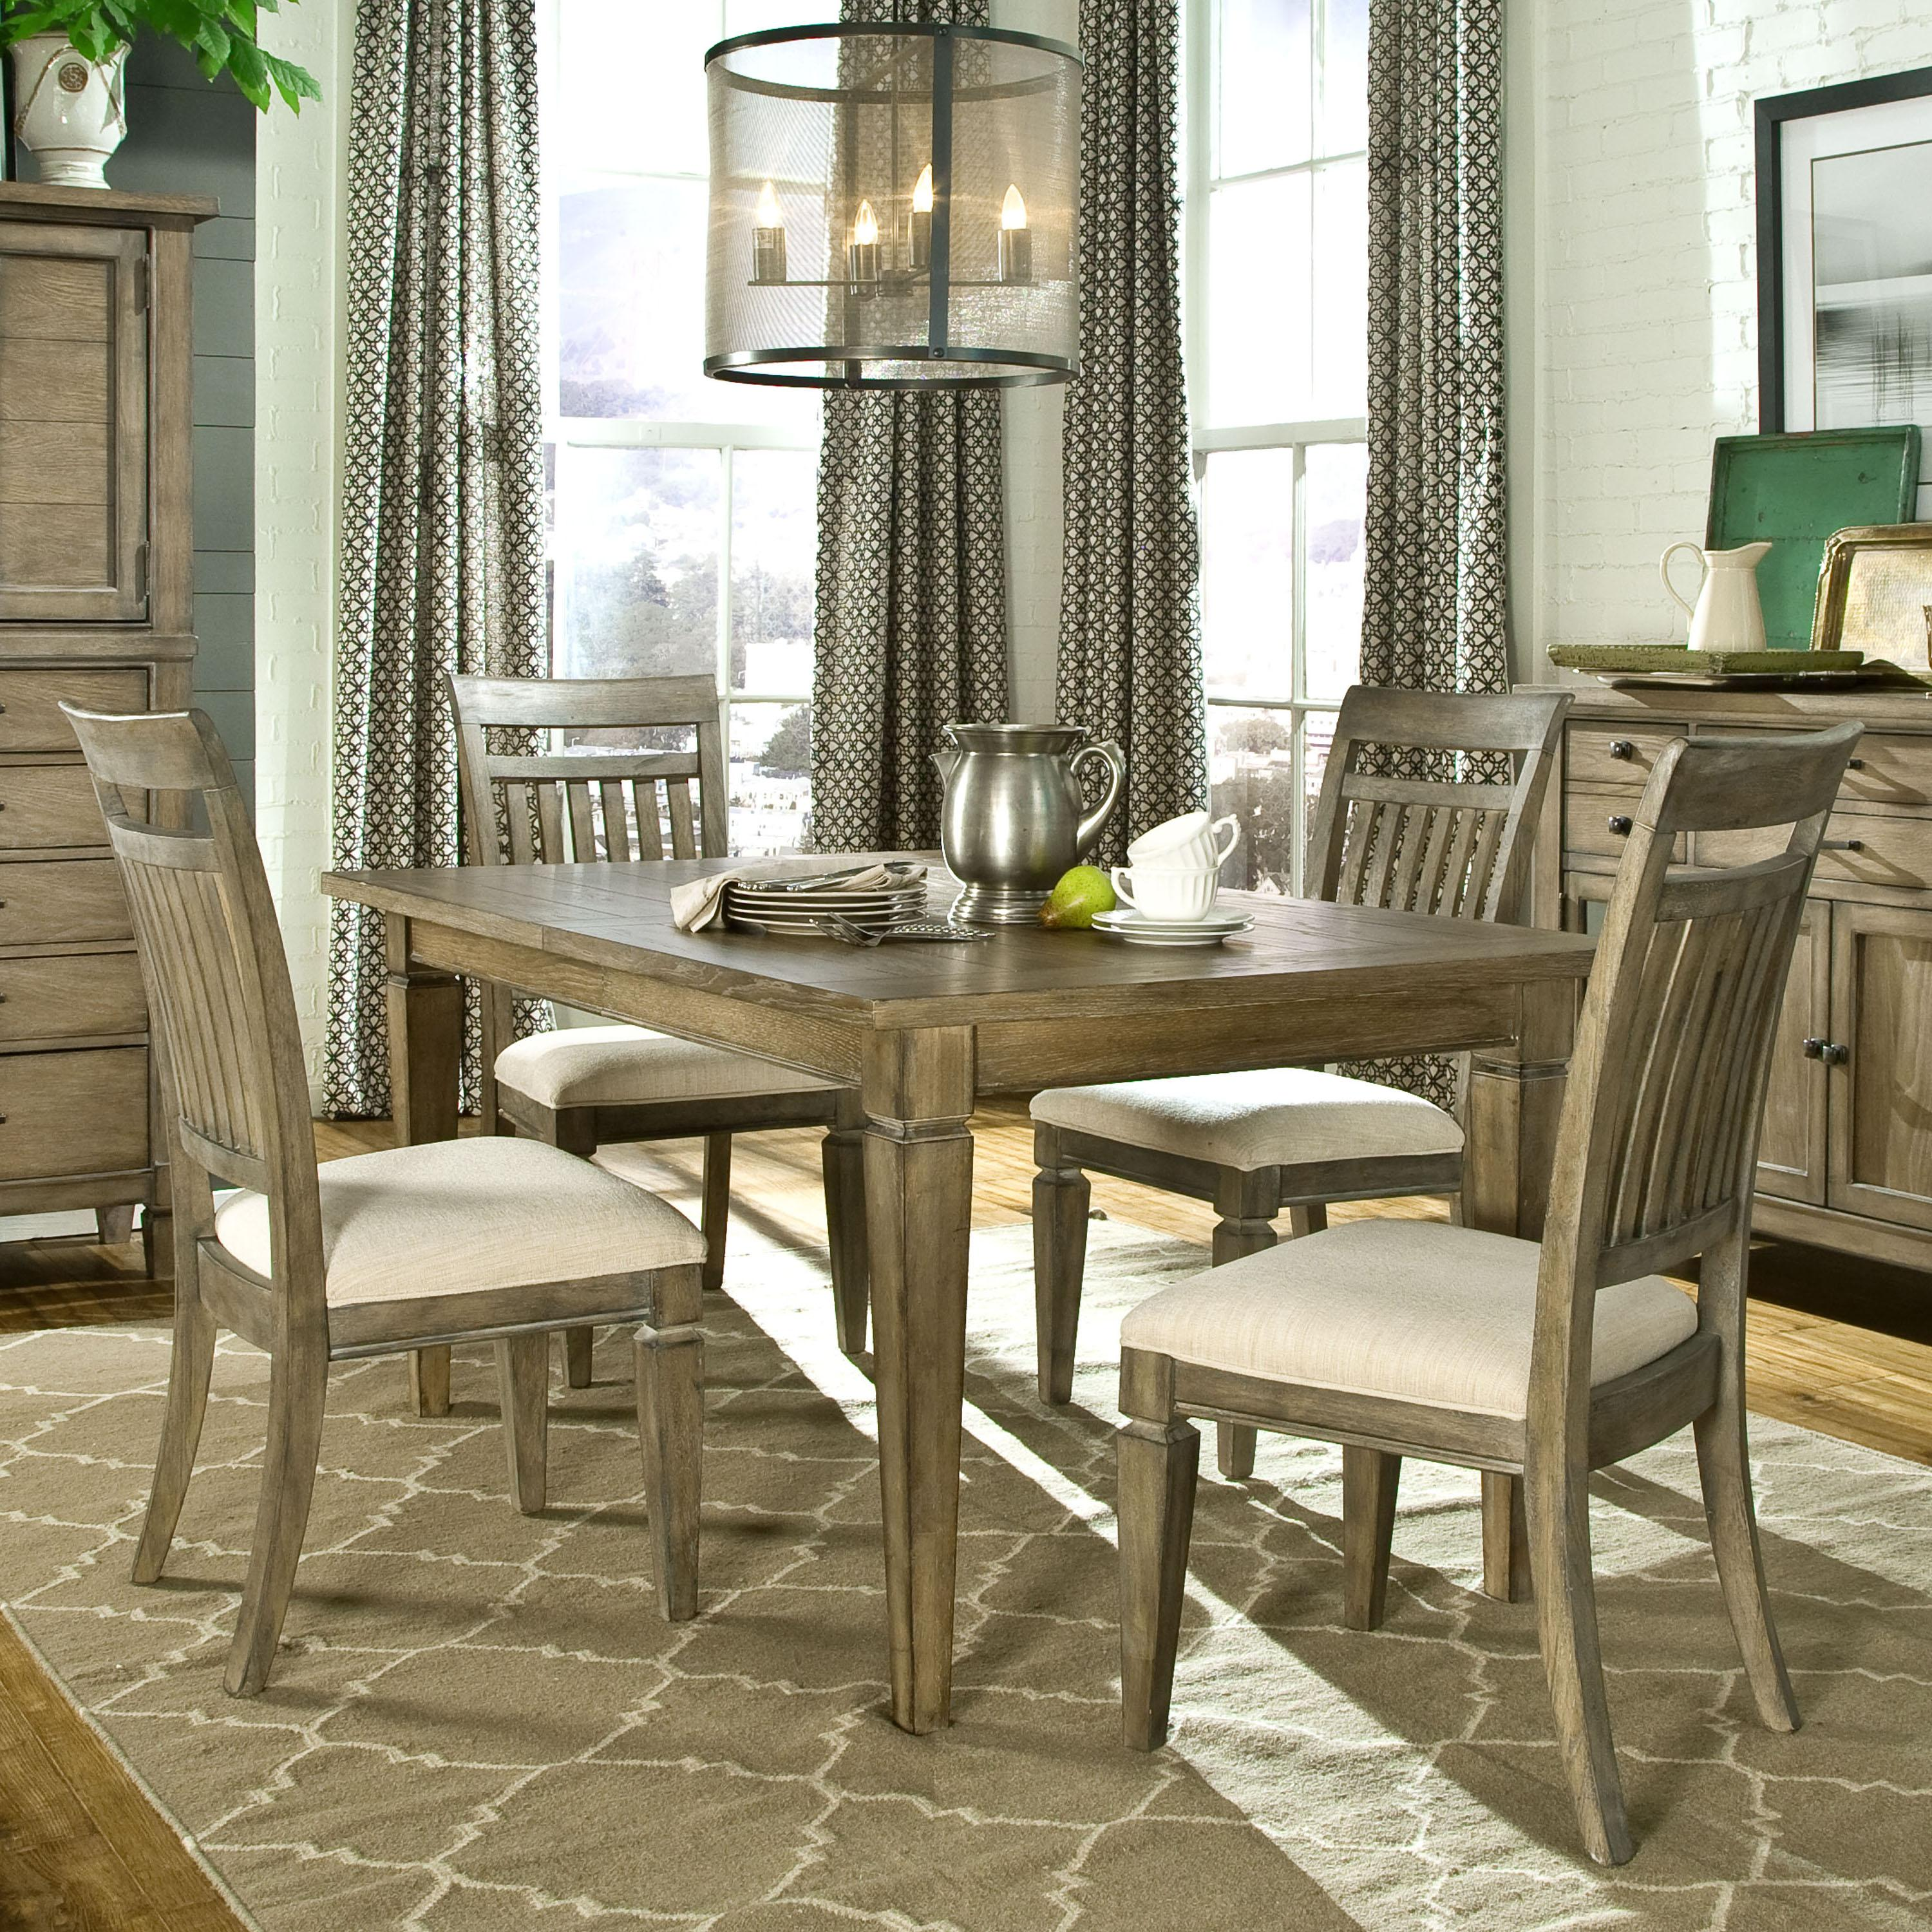 5 Piece Dining Set With Leg Table And Slat Back Side Chairs By Legacy Classic